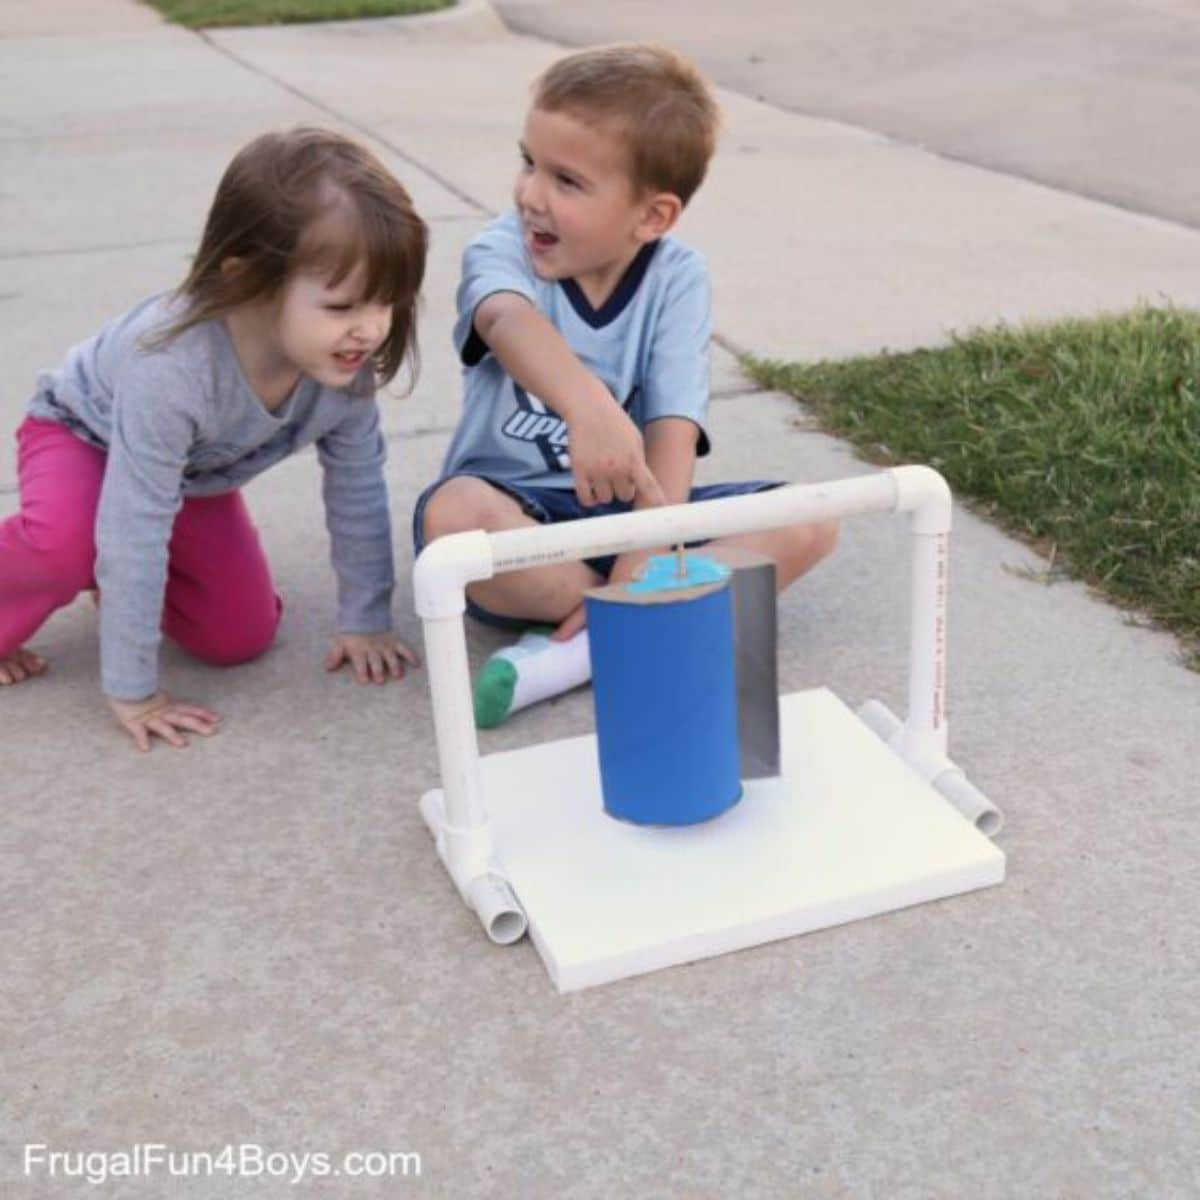 a boy and a girl are sitting on a sidewalk in front of a homemade wind turbine